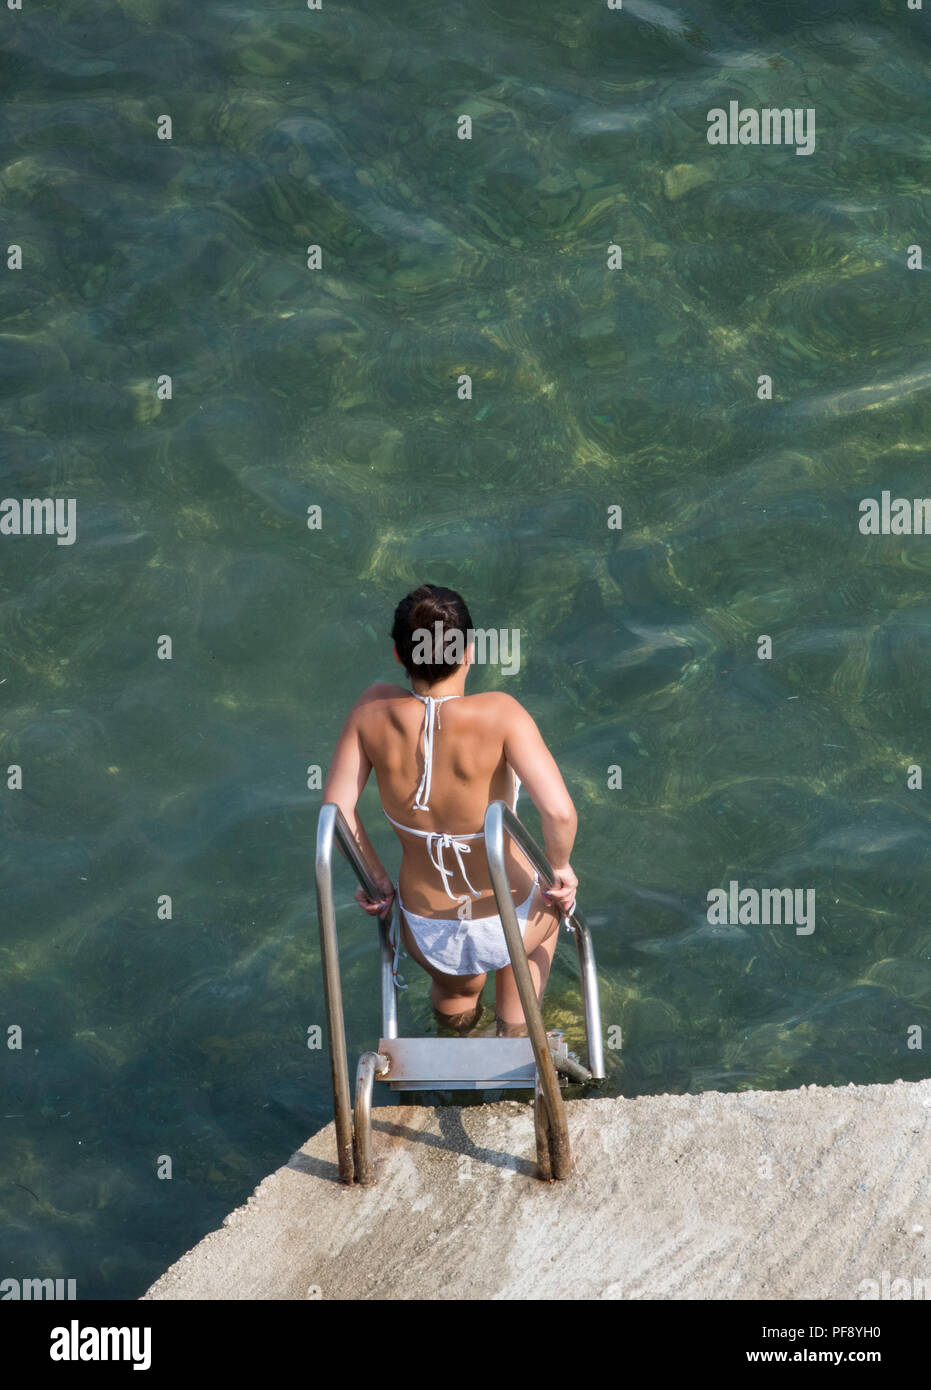 an attractive young woman wearing a bikini or swimming costume entering the sea or water using a ladder. - Stock Image